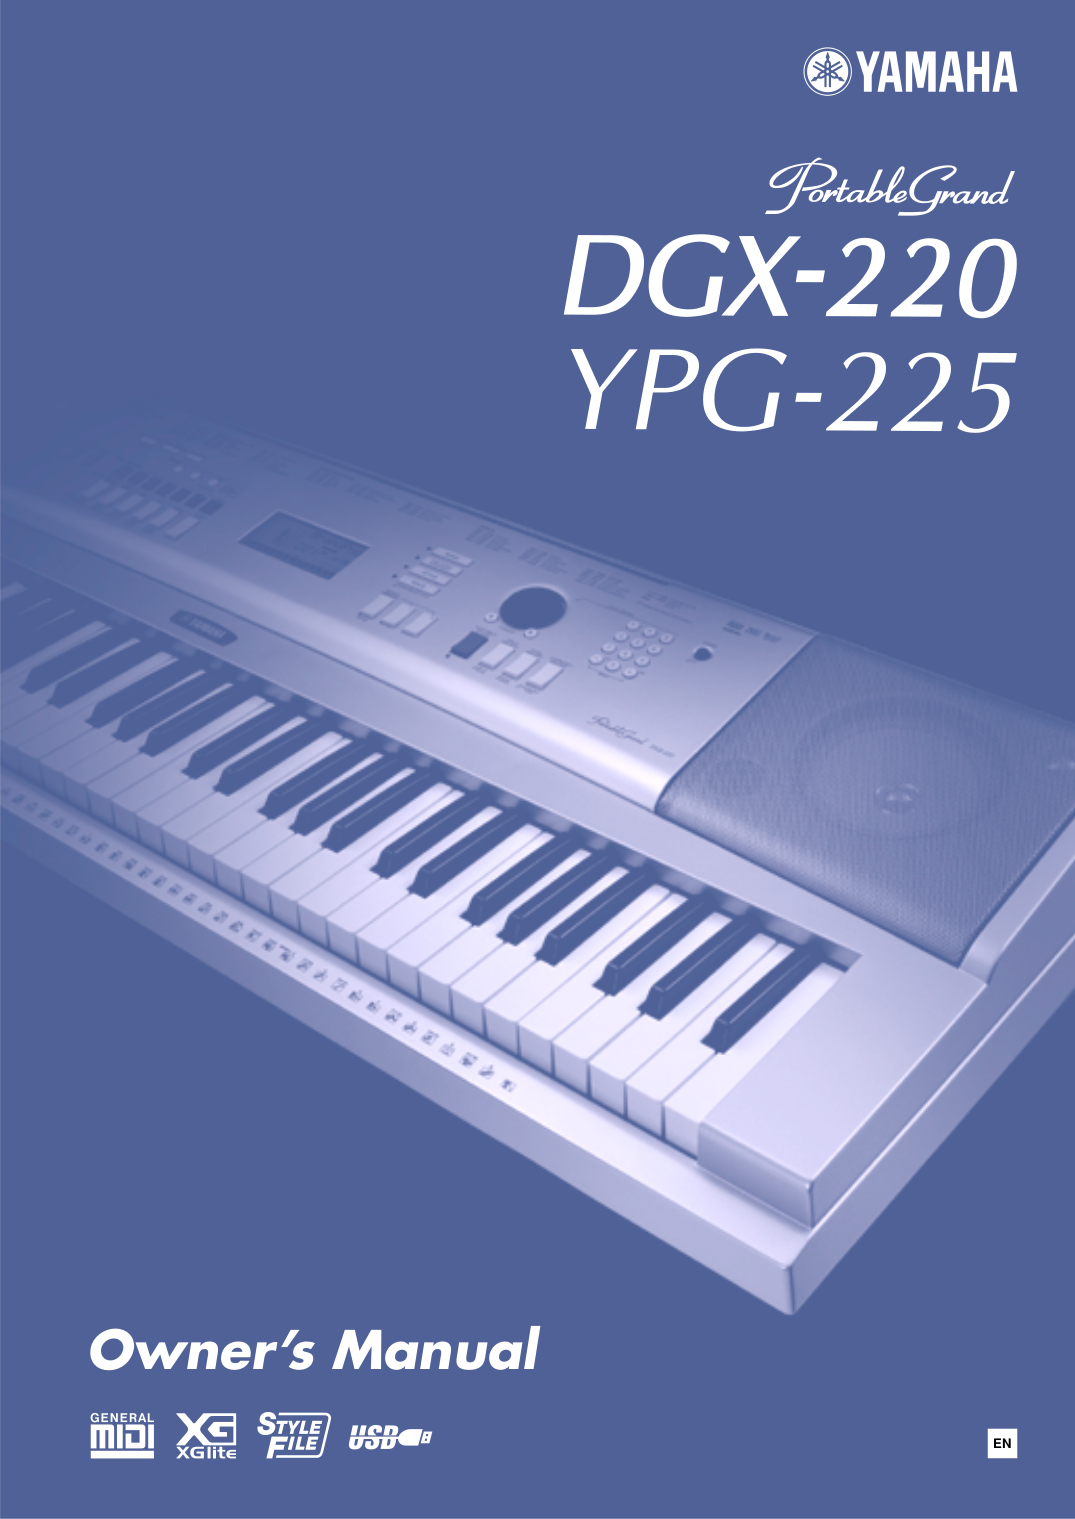 download free pdf for yamaha dgx 230 music keyboard manual rh umlib com yamaha dgx230 portable grand piano manual yamaha dgx-230 manual pdf